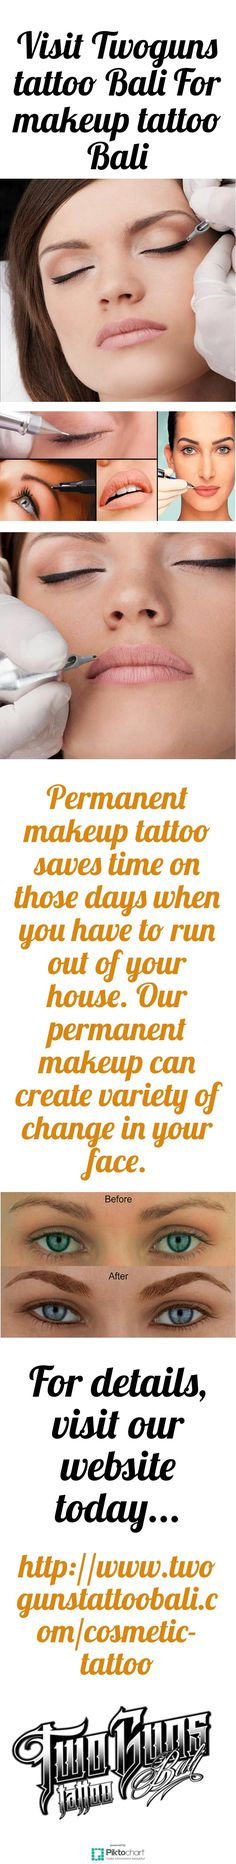 Permanent makeup tattoo saves time on those days when you have to run out of your house. Our permanent makeup can create variety of change in your face. Hurry up! Visit Twoguns tattoo Bali For makeup tattoo Bali.  http://www.twogunstattoobali.com/cosmetic-tattoo